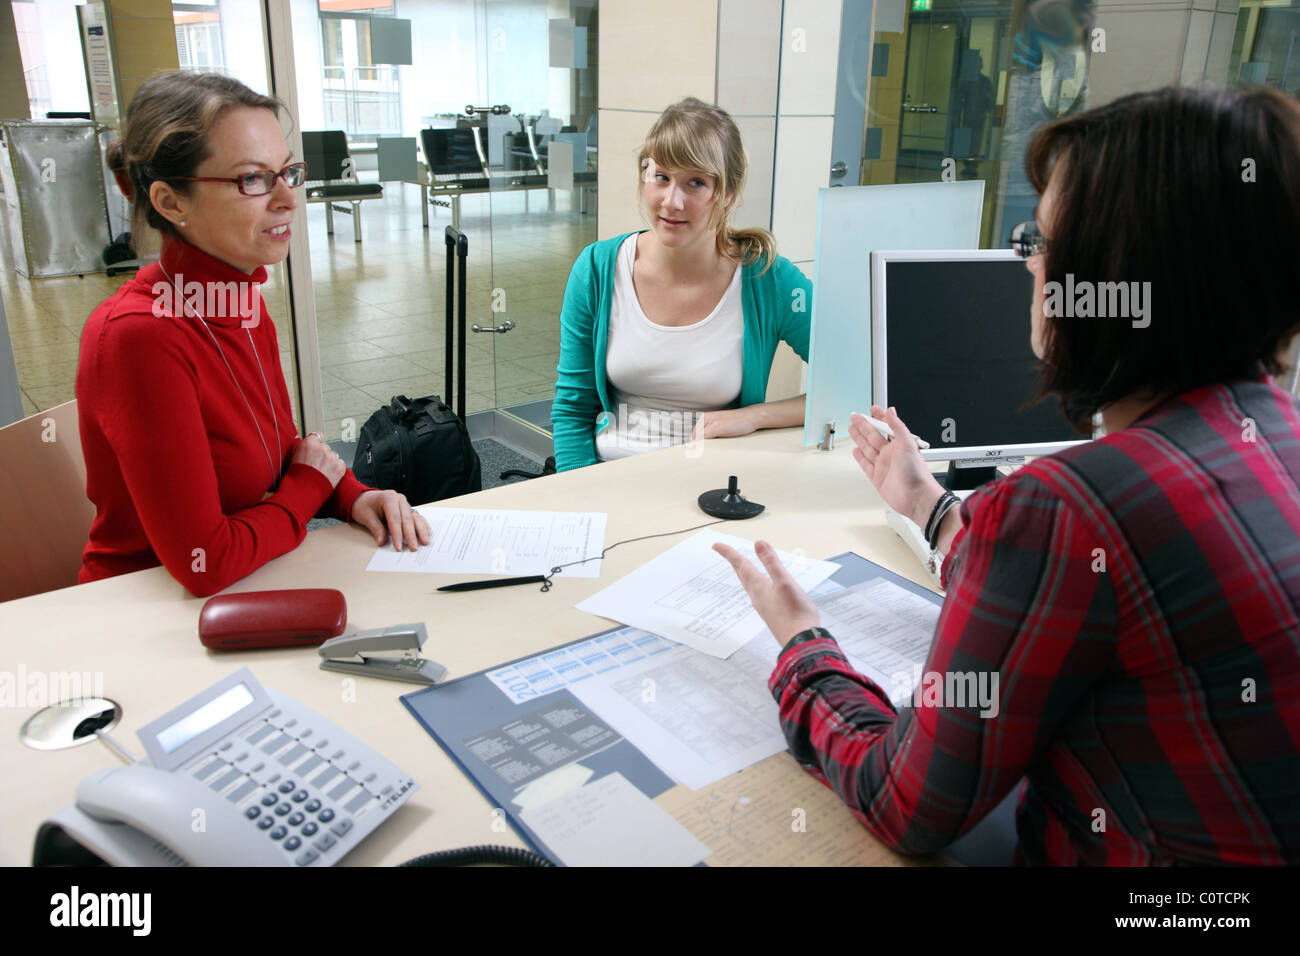 Central patient admission in a hospital. Mother helps her daughter checking into a hospital for a surgery. - Stock Image